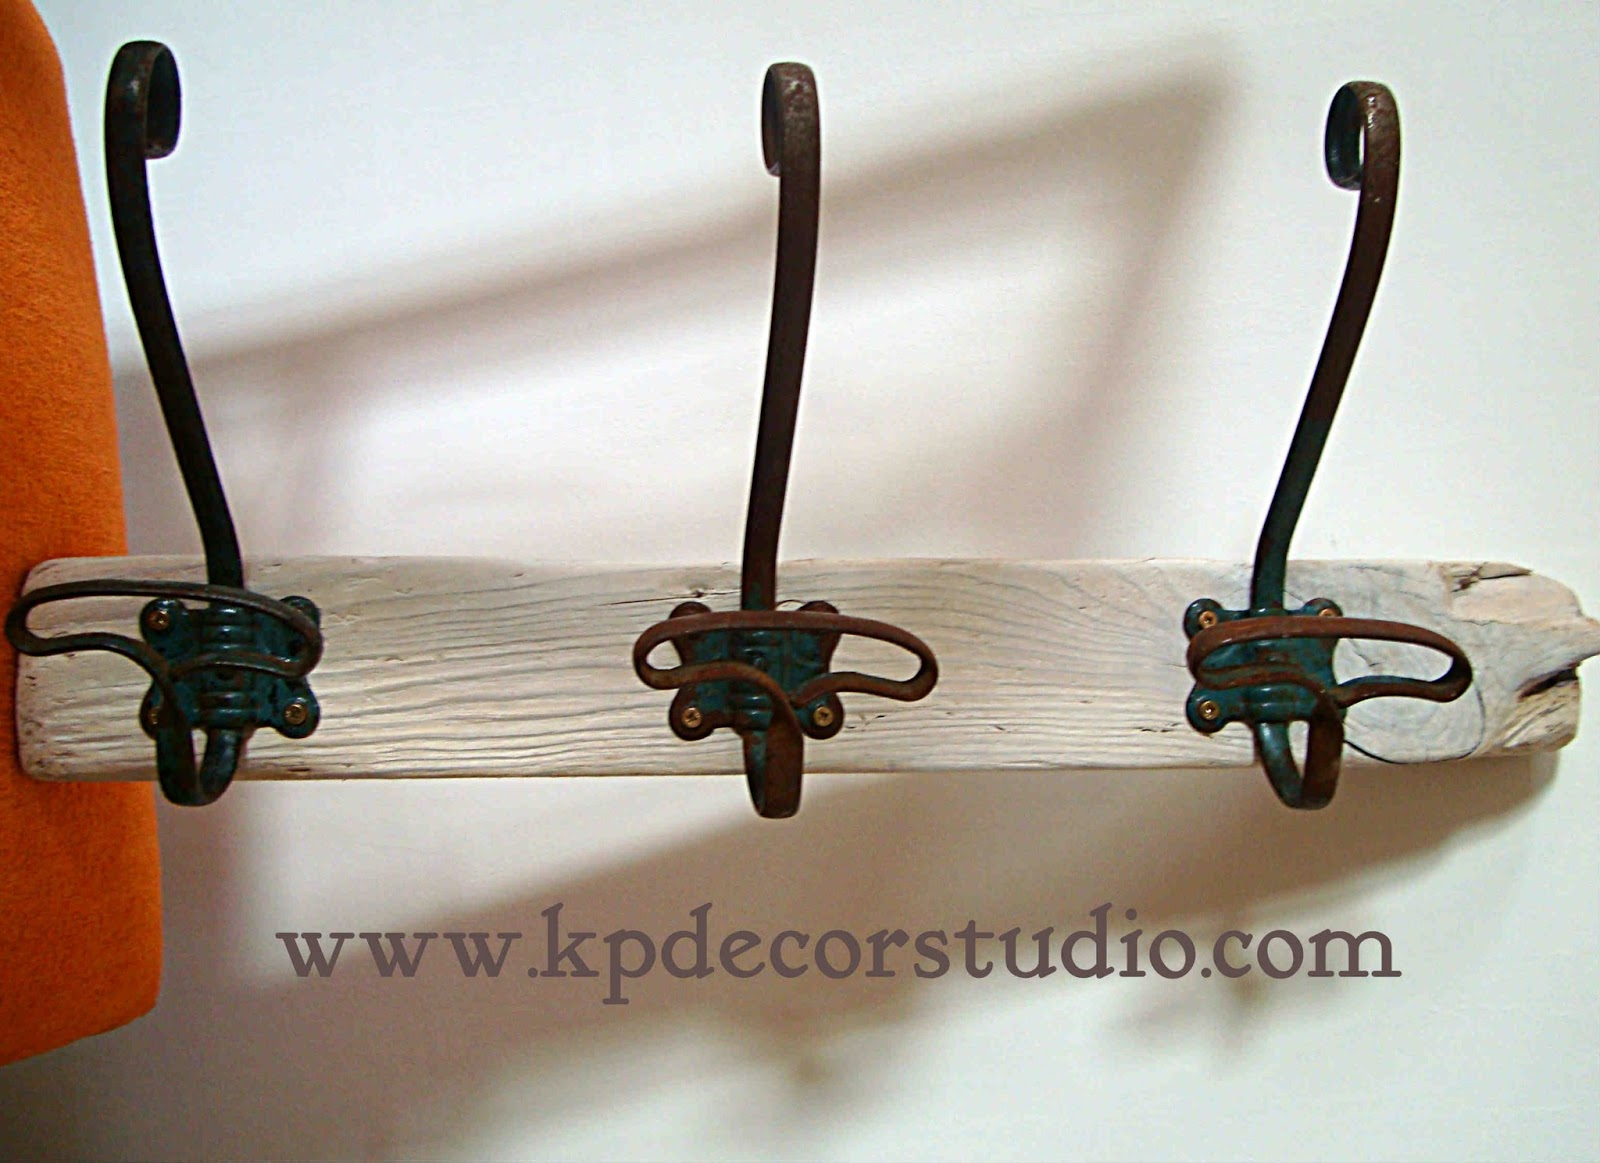 Kp decor studio perchero artesanal de madera con 3 - Percheros de pared baratos ...